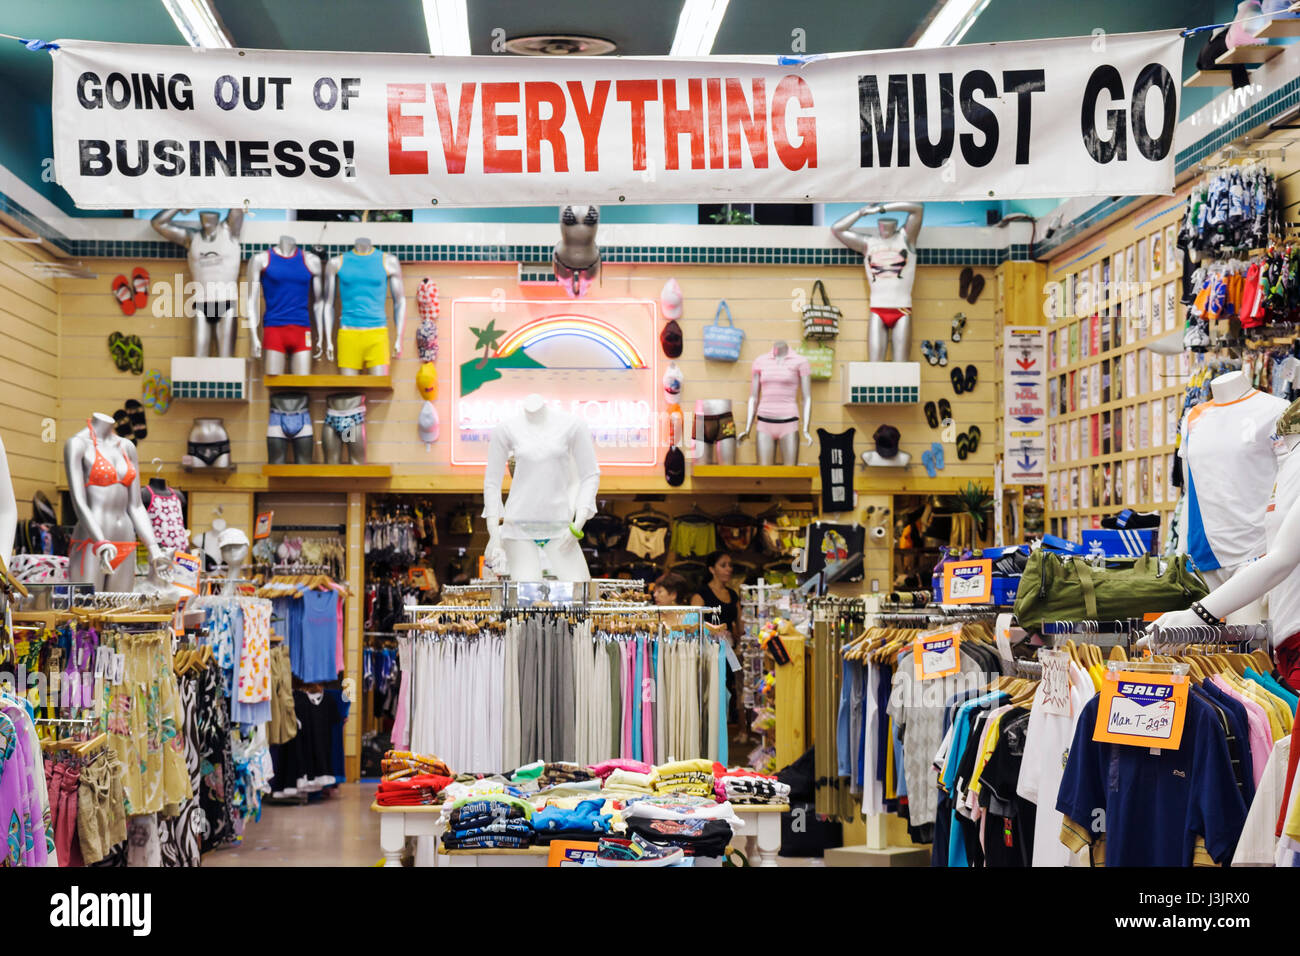 Liquidating a small retail business